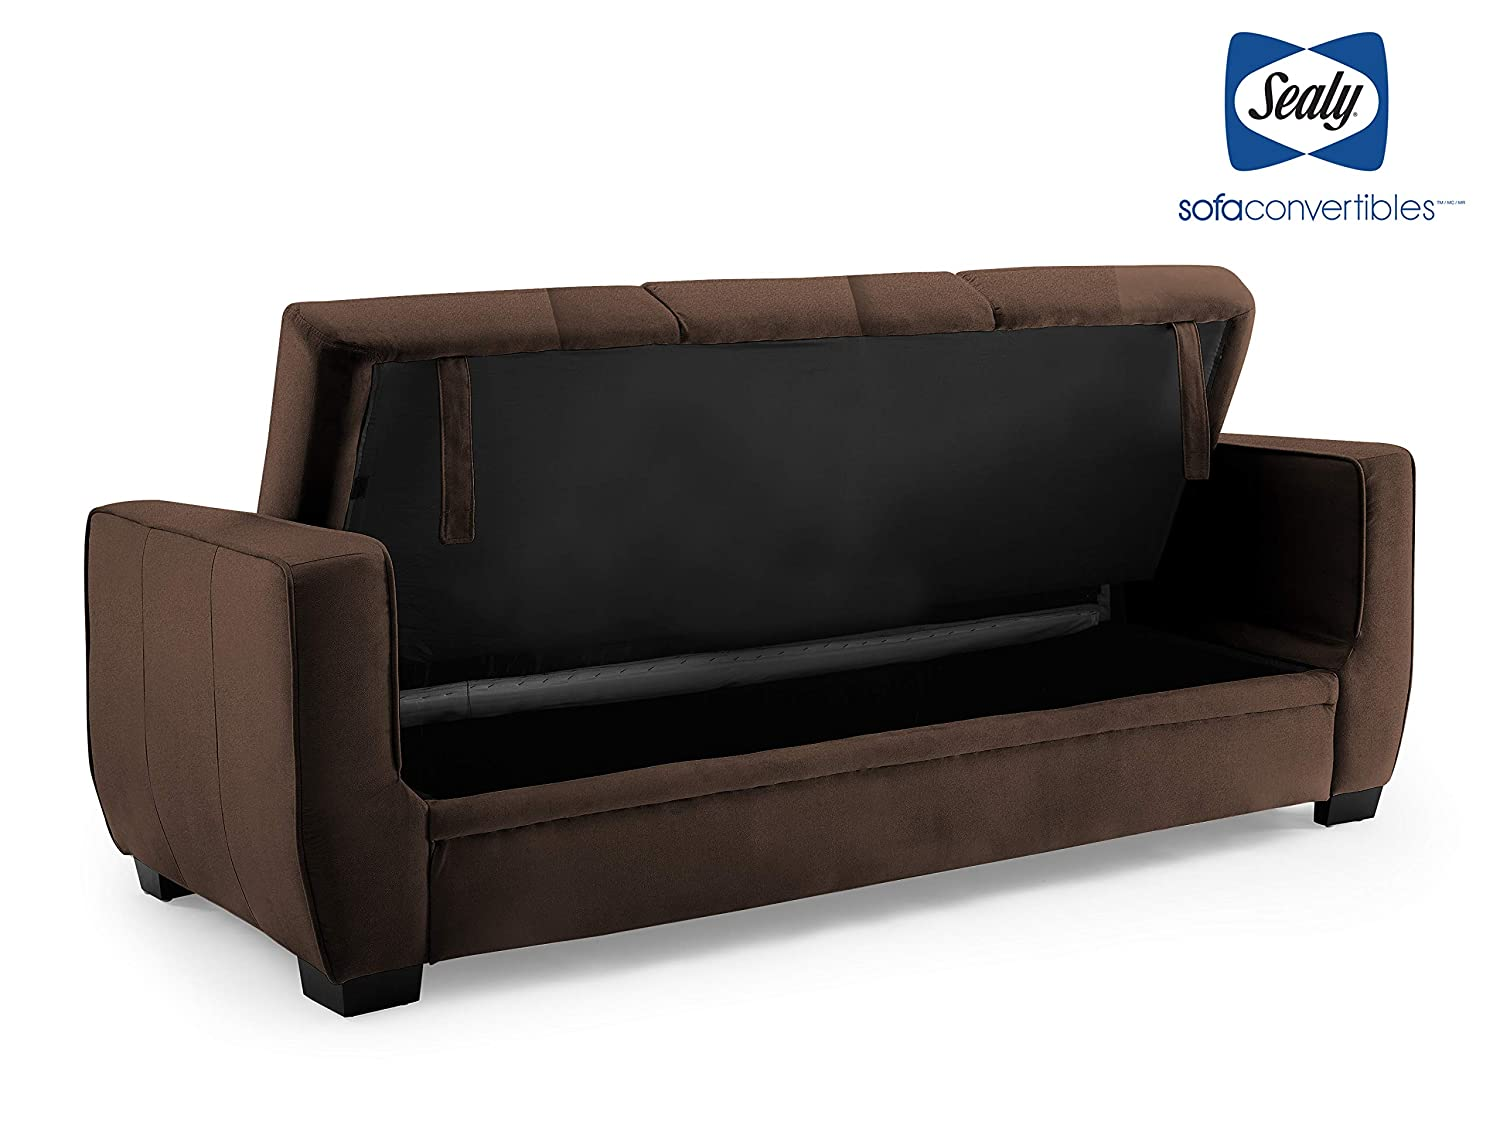 Sydney Pecan Sealy Perris Sofa Convertible with Storage by Sealy